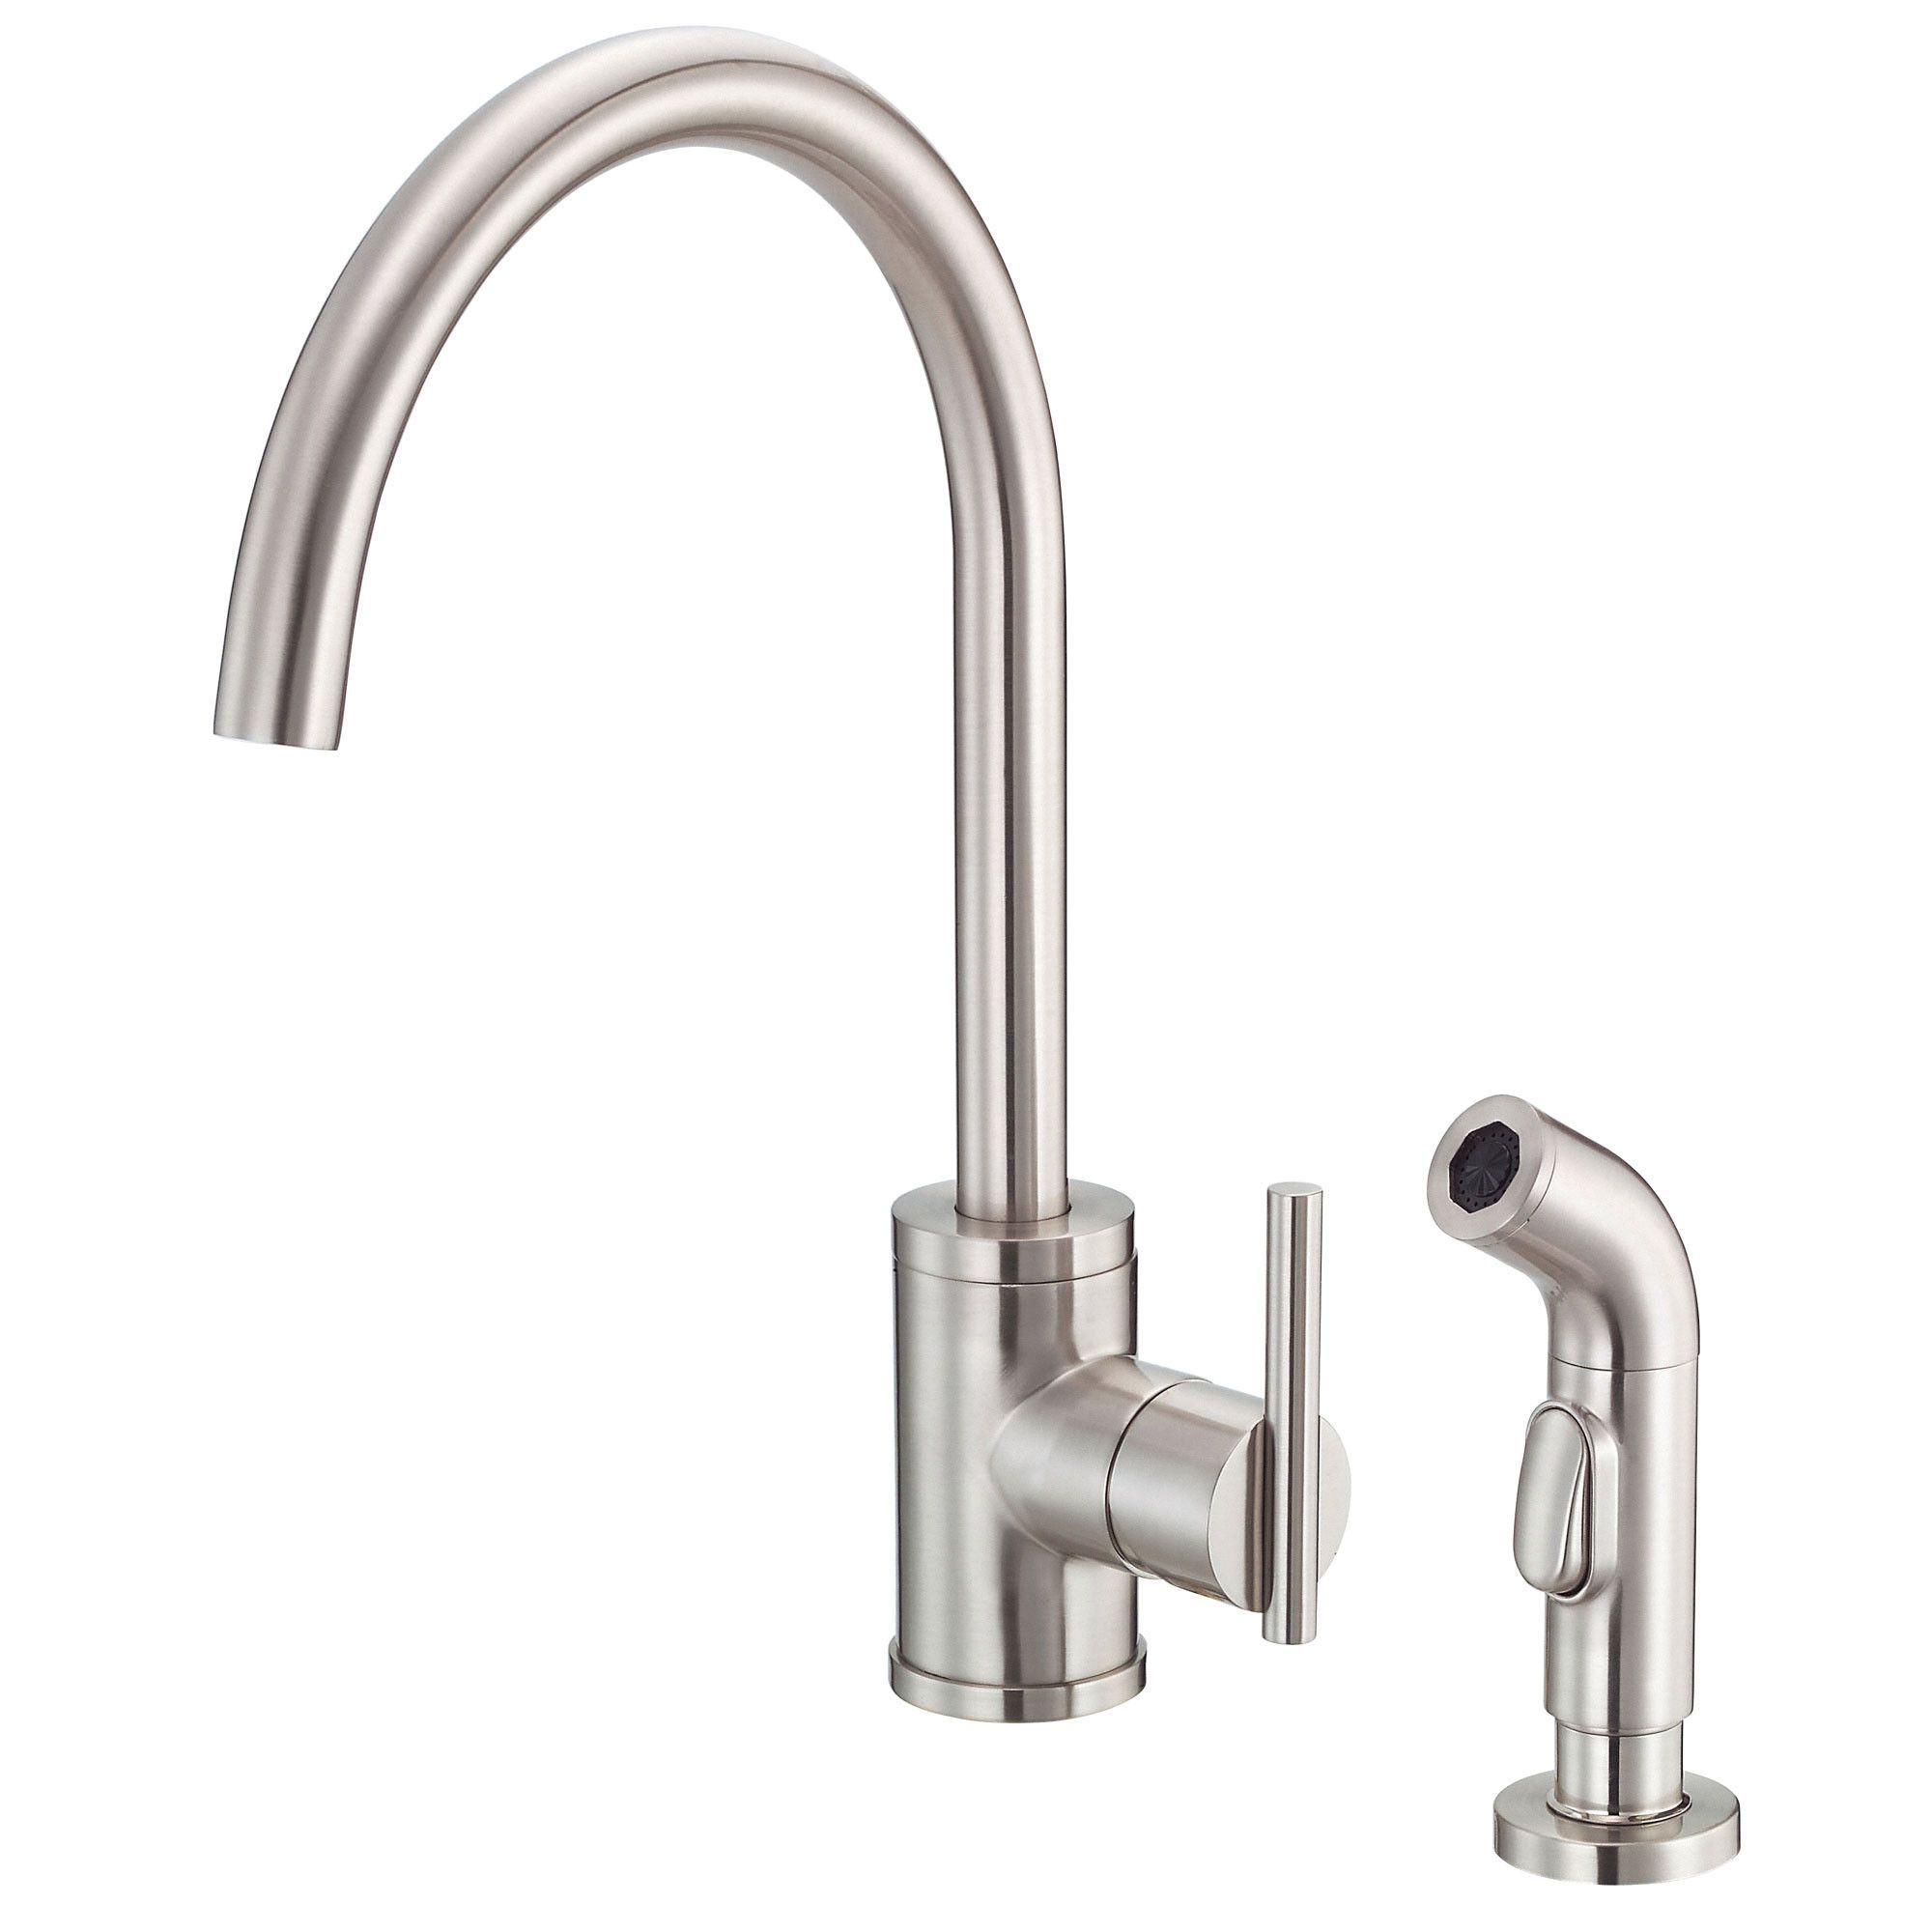 Danze Parma Stainless Steel Modern Single Handle Kitchen Faucet